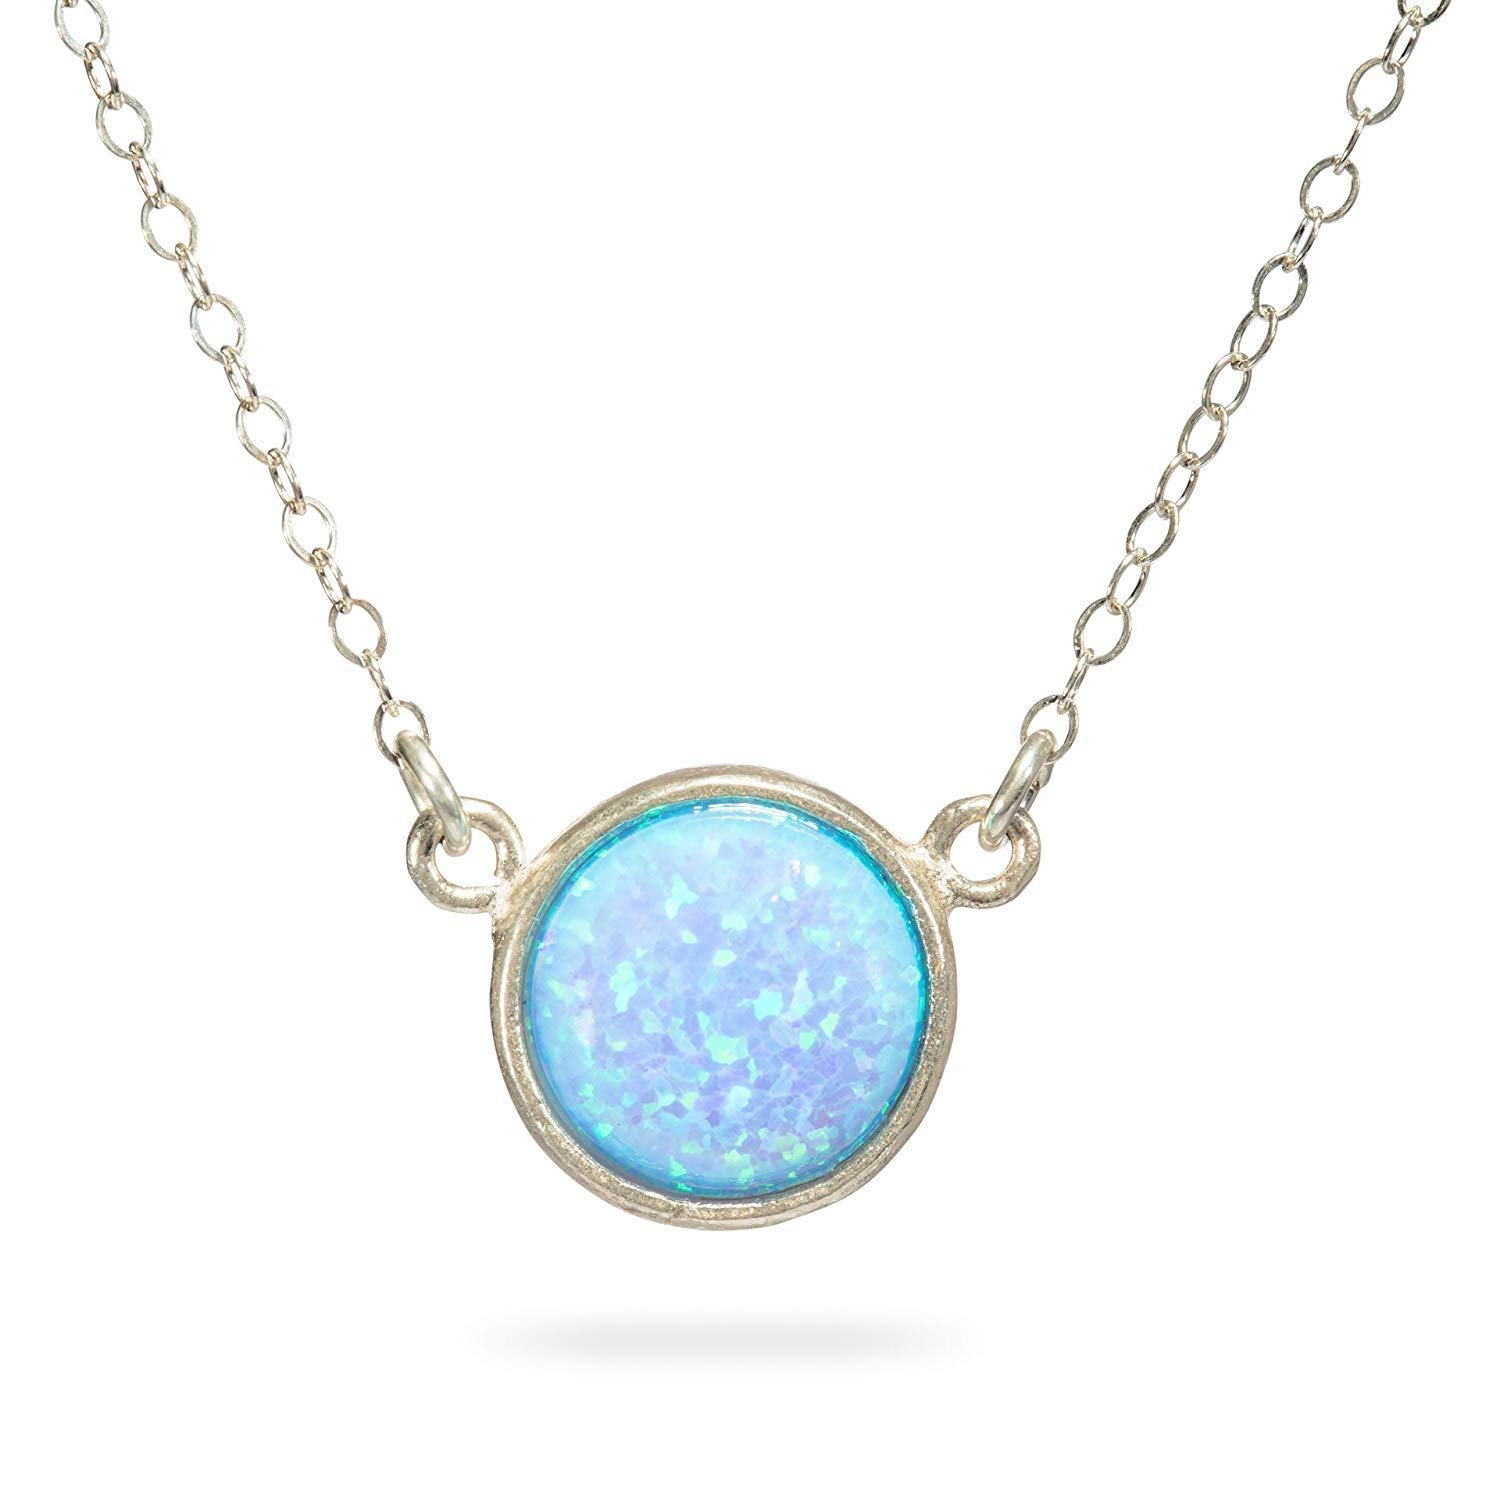 Blue Opal Pendant Necklace Sterling Silver Gemstone Circle 10mm Opal Pendant Length 41 cm/16 inch+5cm Extender